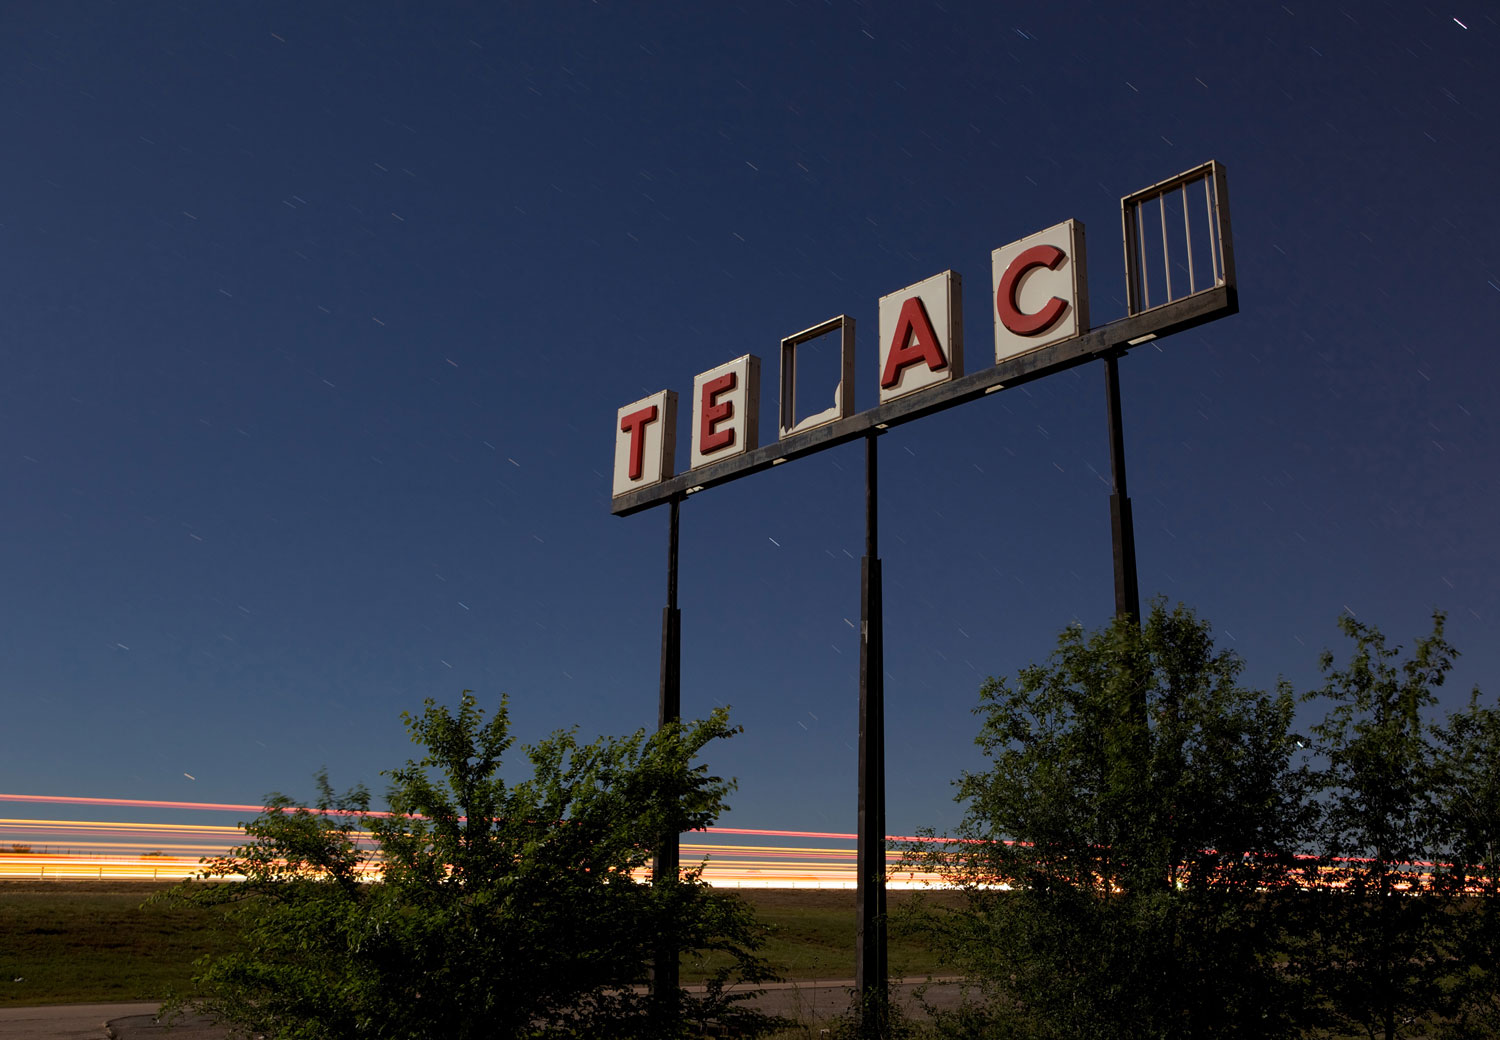 Texaco - Hydro, Oklahoma - The Flash Nites